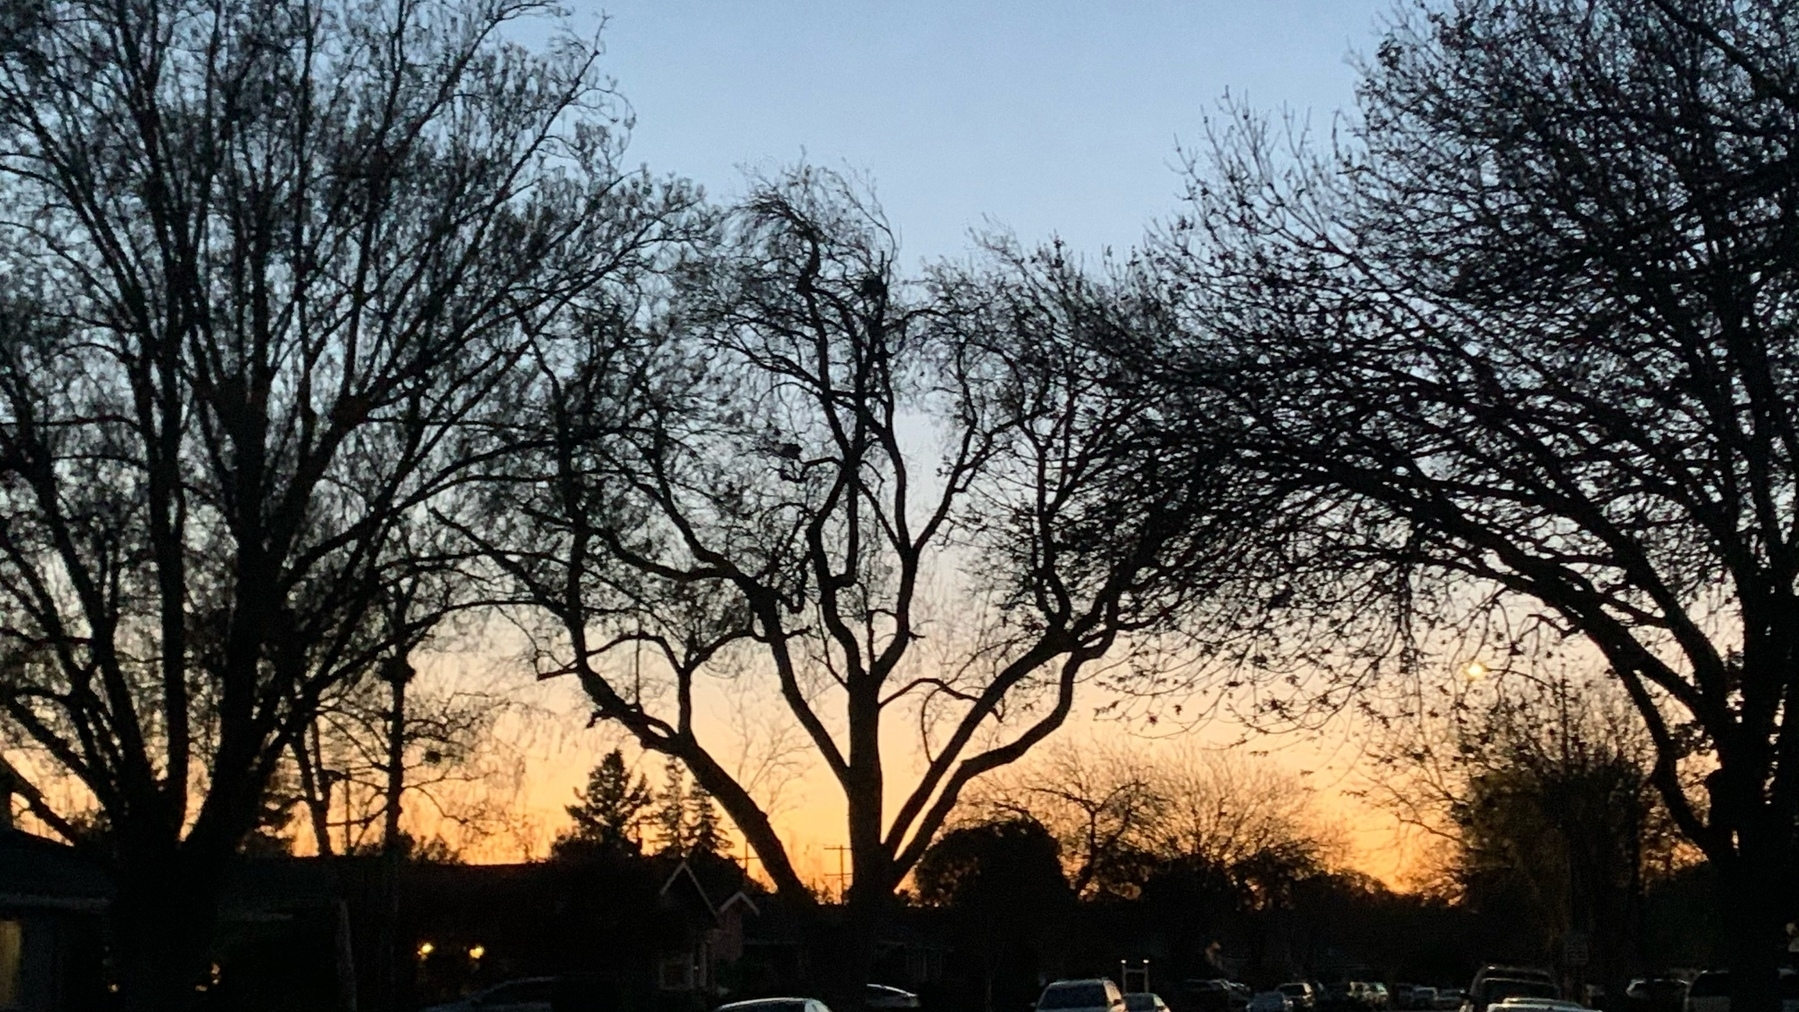 sunset seen through street trees silhouettes